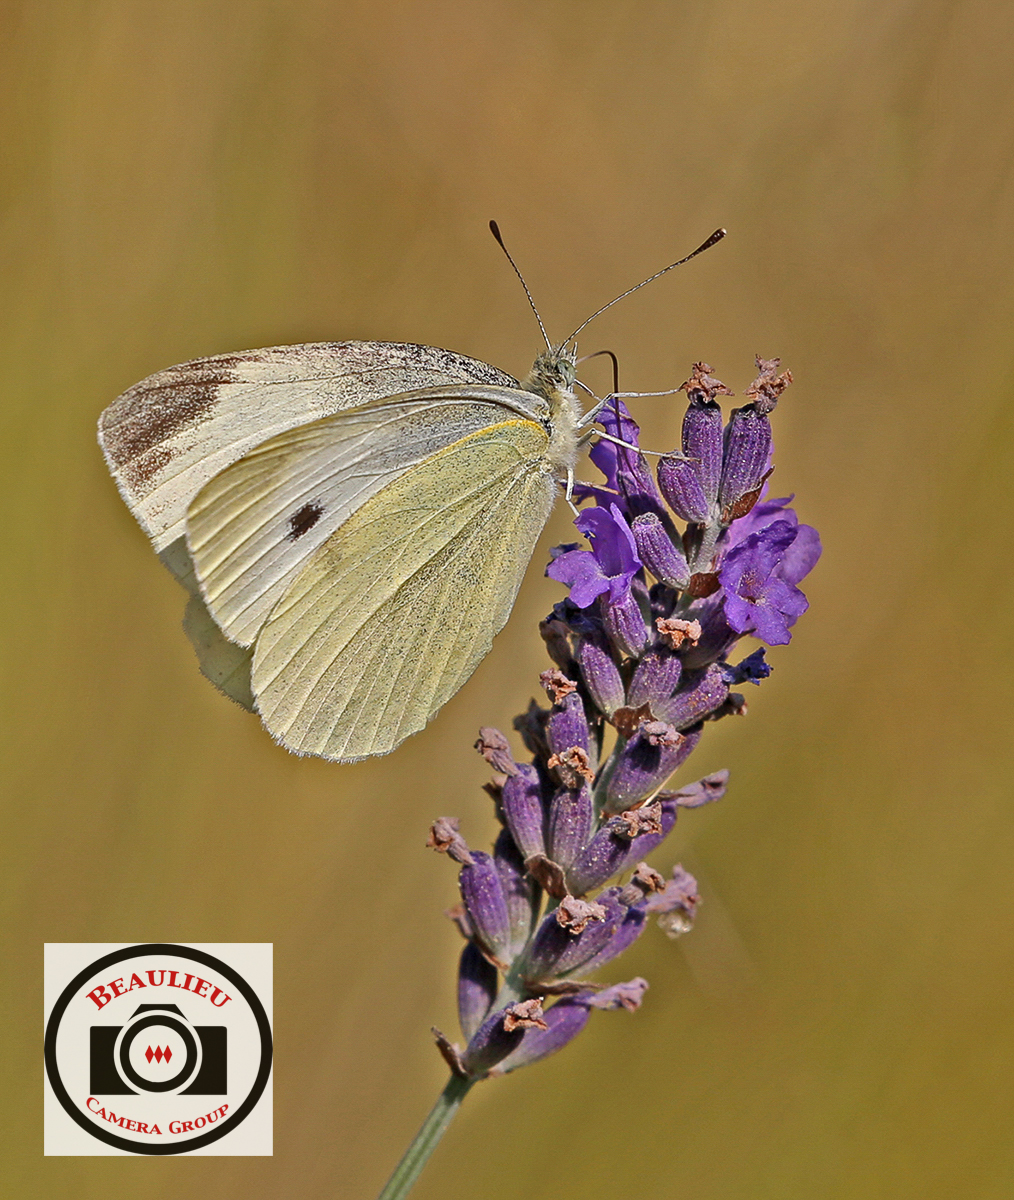 Jacky Daniel Small White on Lavender